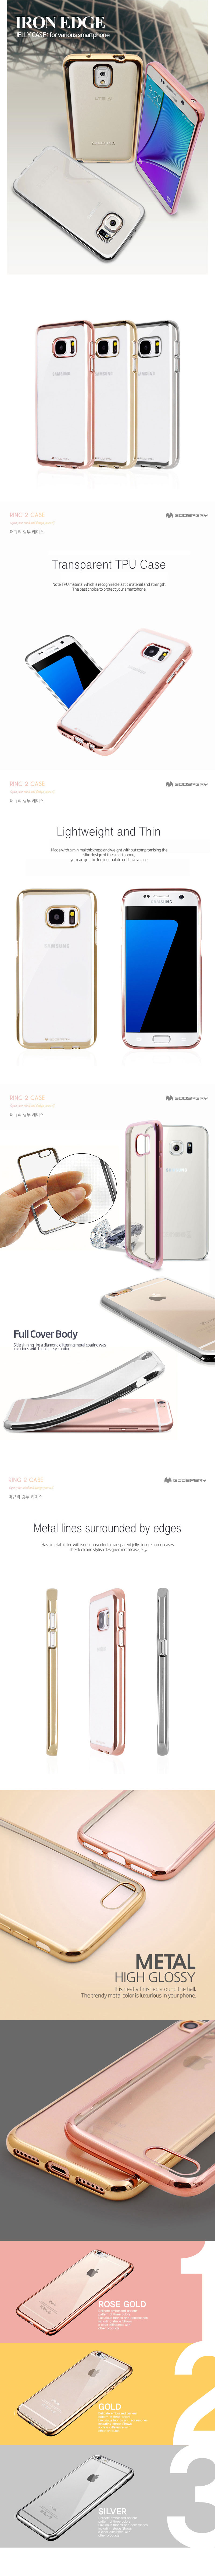 Buy Jk Commercemercury I Jelly Metal Casegalaxy Note 8 S8 S7 Goospery Iphone Plus Soft Feeling Case With Hole White 03 Mercury